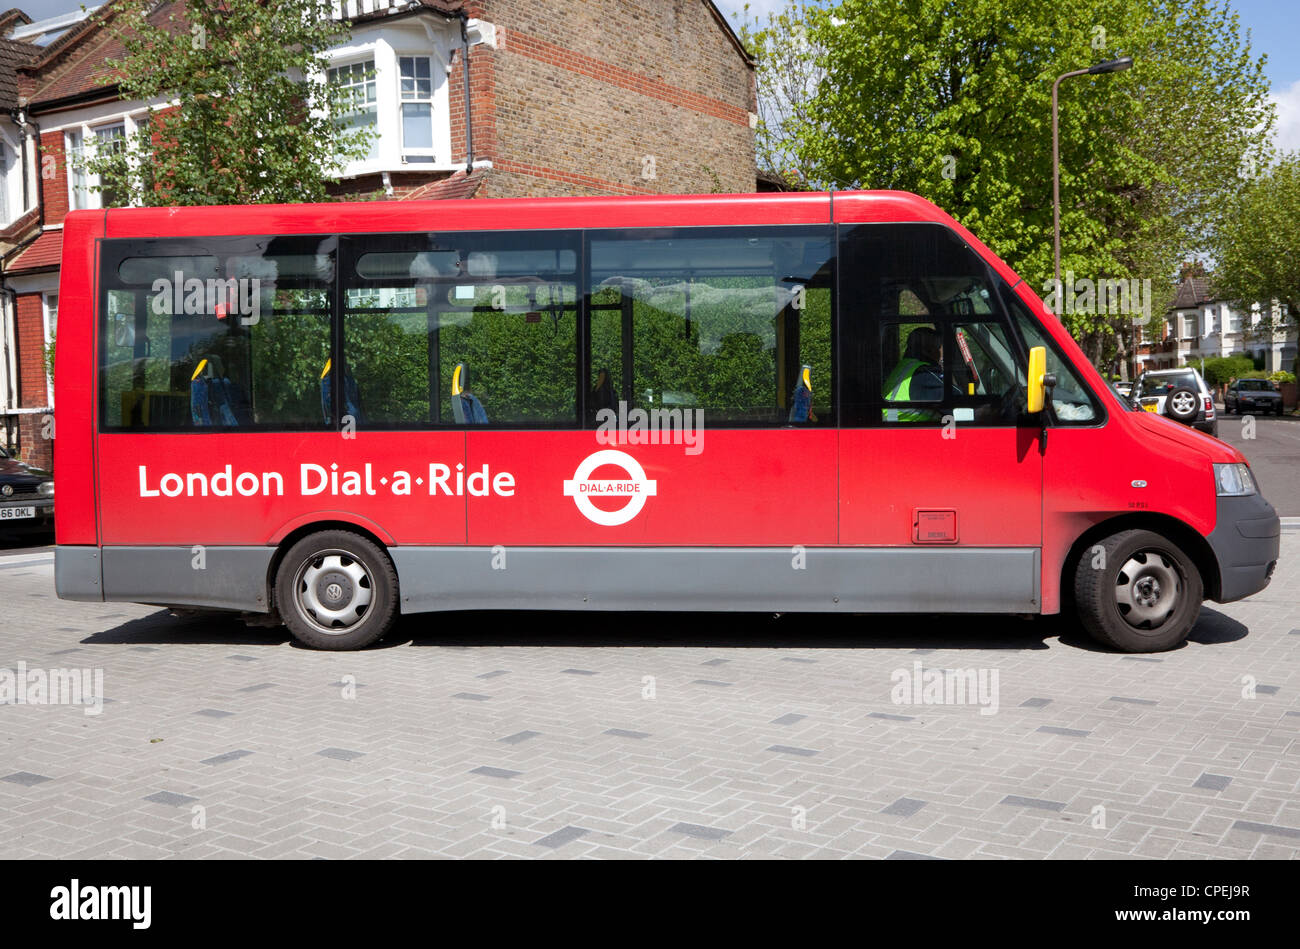 London Dial-a-Ride bus service in North London street - Stock Image